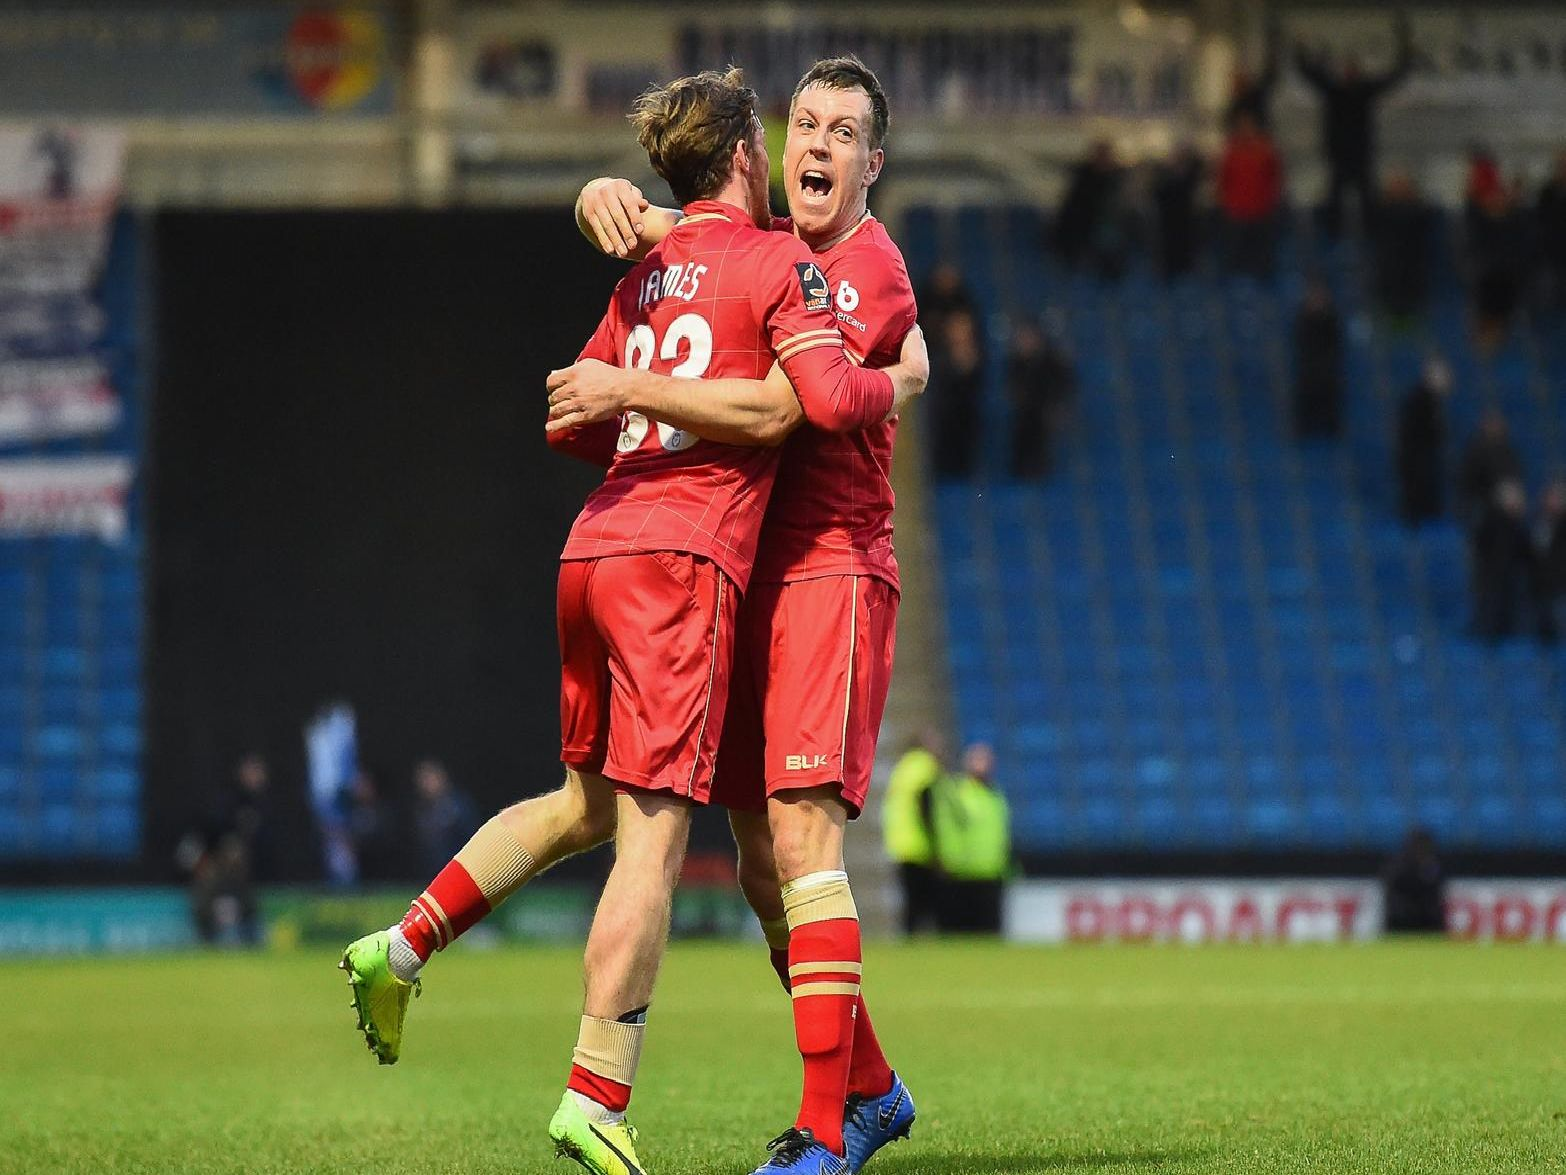 Luke James and Carl Magnay celebrate Hartlepool's goal against Chesterfield.